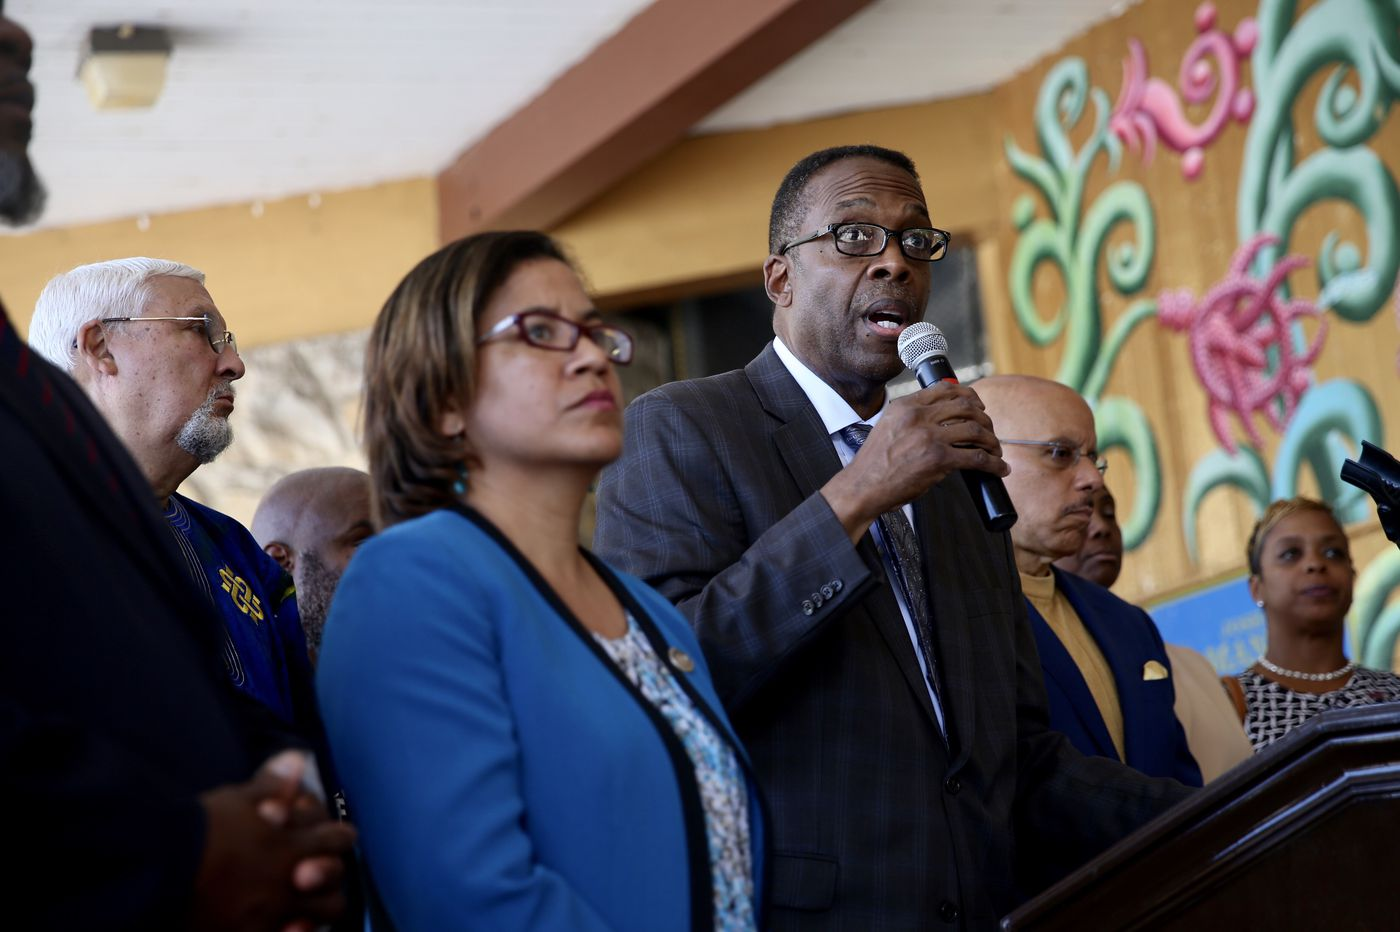 Philly Council President Darrell Clarke calls for law banning guns at rec centers. Can it pass the Pa. legislature?